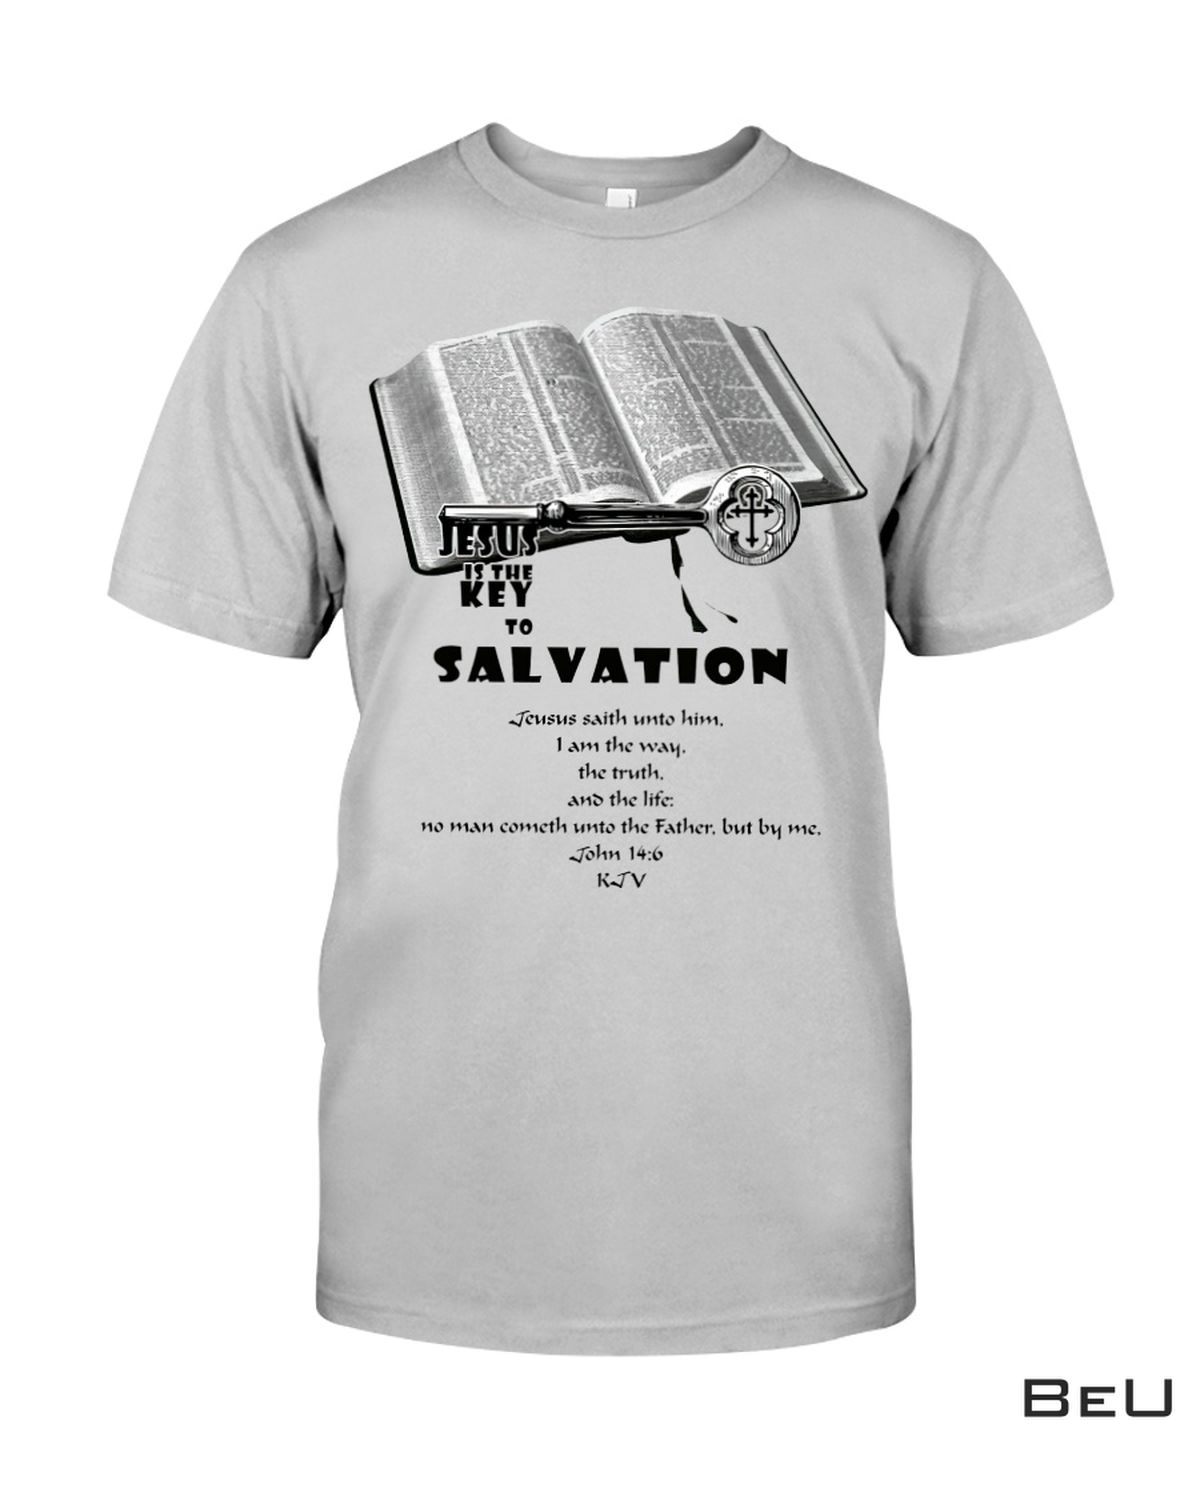 Jesus Is The Key To Salvation Shirt